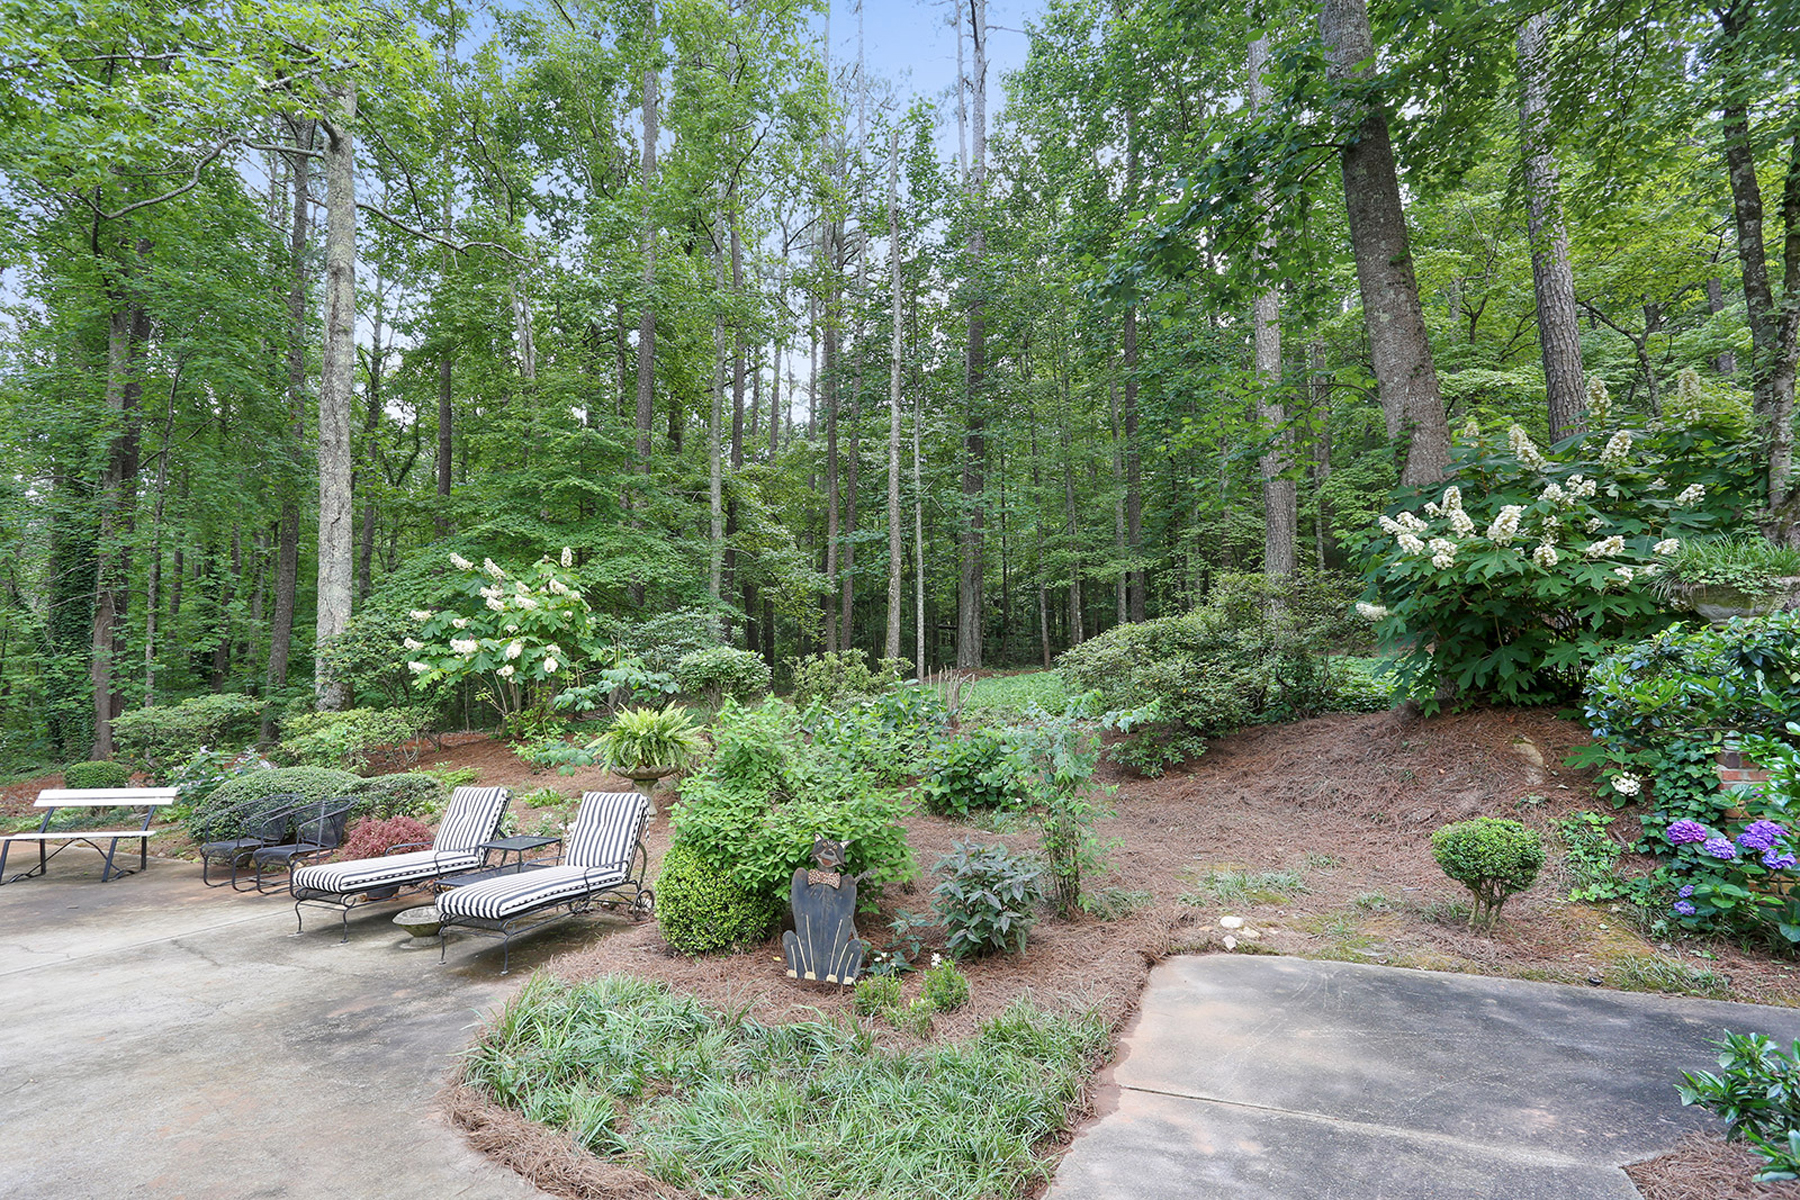 Additional photo for property listing at 12.8 Acres With House And Pond 4185 Old Stilesboro Road NW Kennesaw, Γεωργια 30152 Ηνωμενεσ Πολιτειεσ